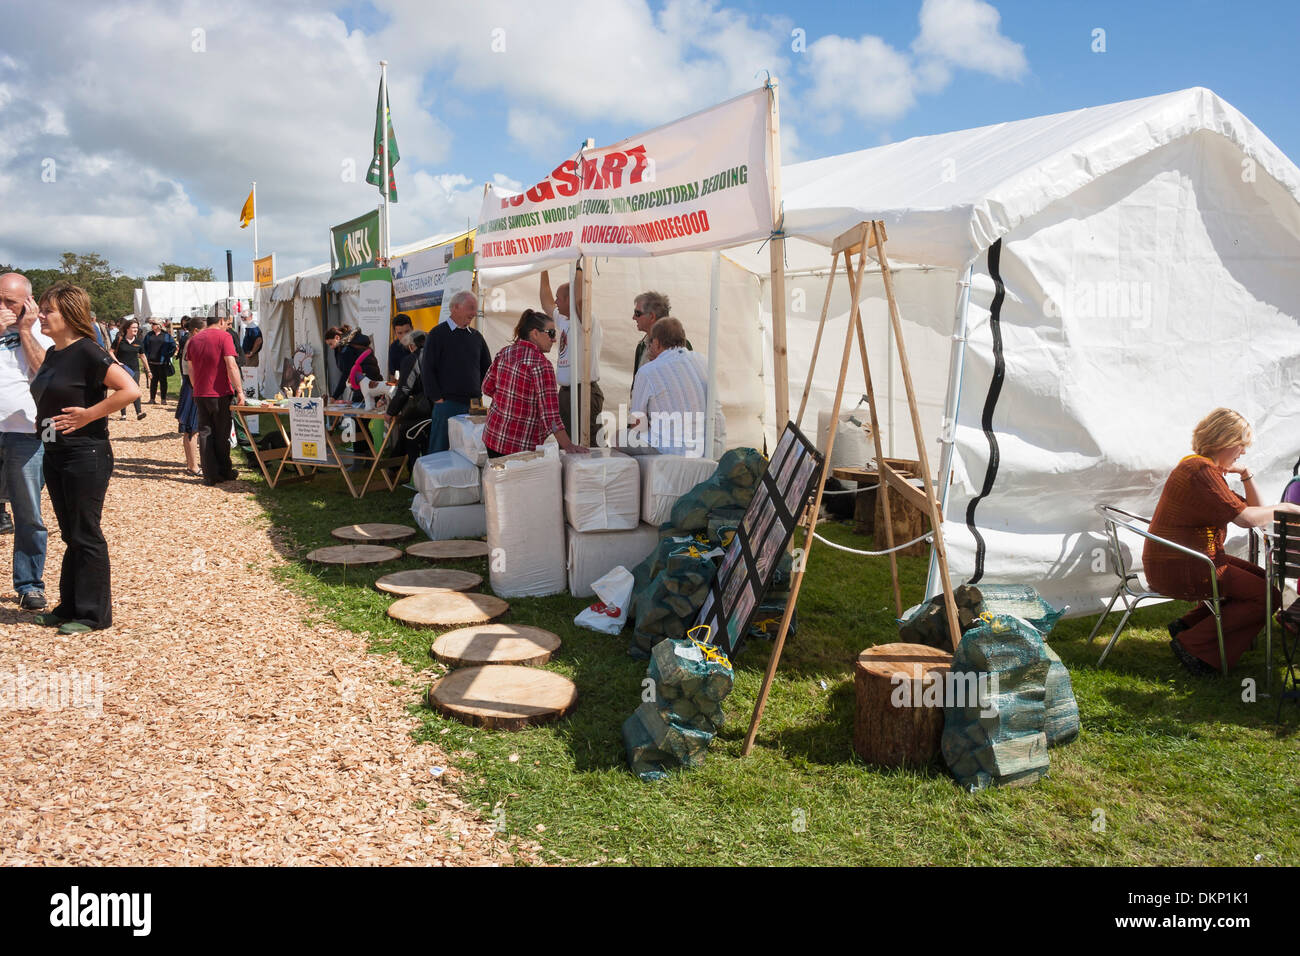 Trade Stands Hoys : Trade stands tents at agricultural show stock photo